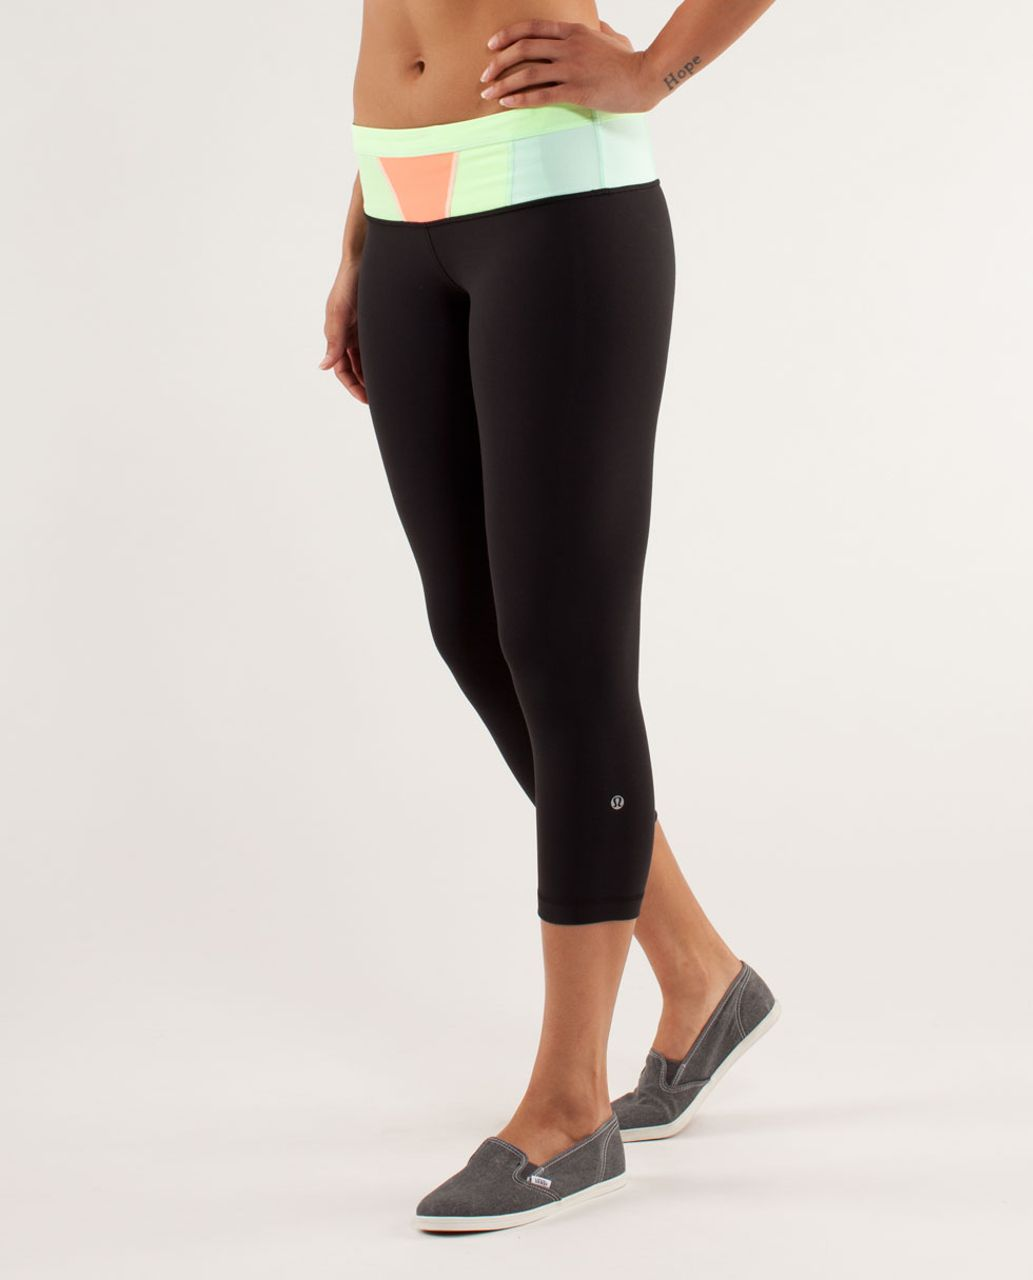 Lululemon Wunder Under Crop - Black / Quilt Spring13 9